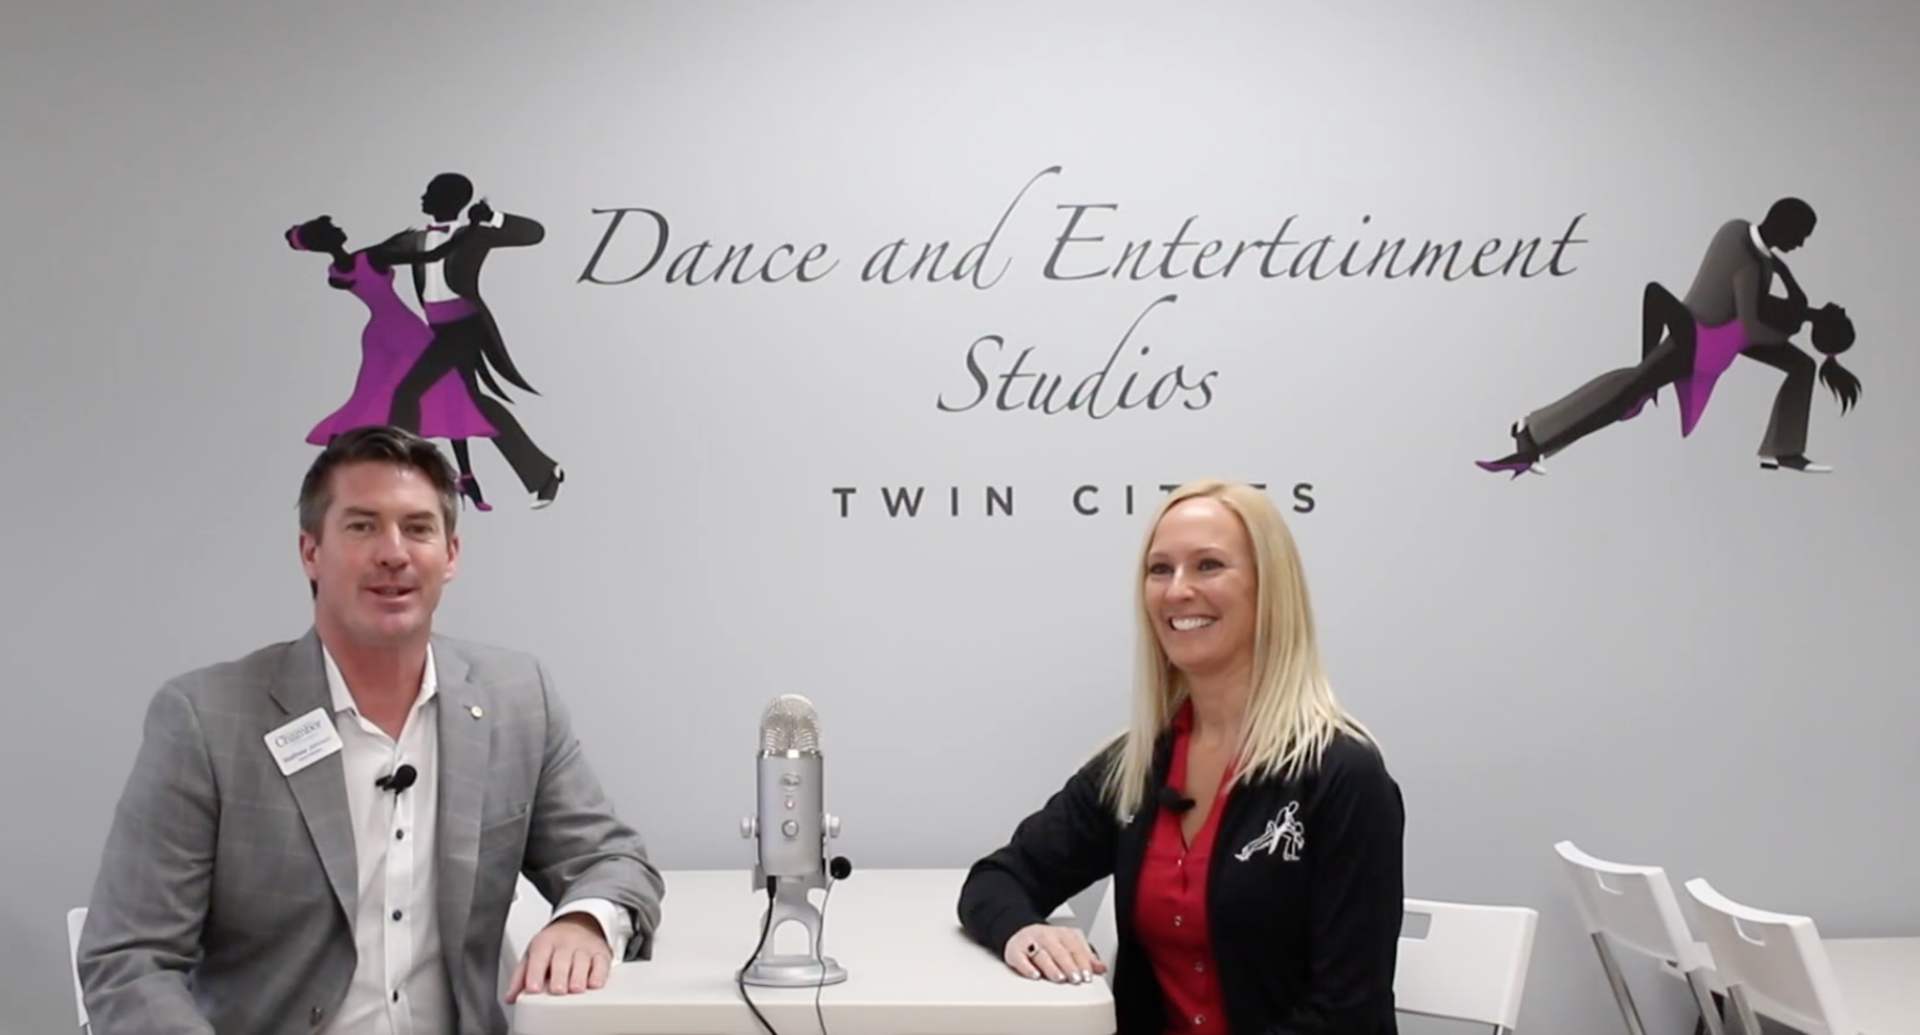 What's Up Woodbury – Dance and Entertainment Studios